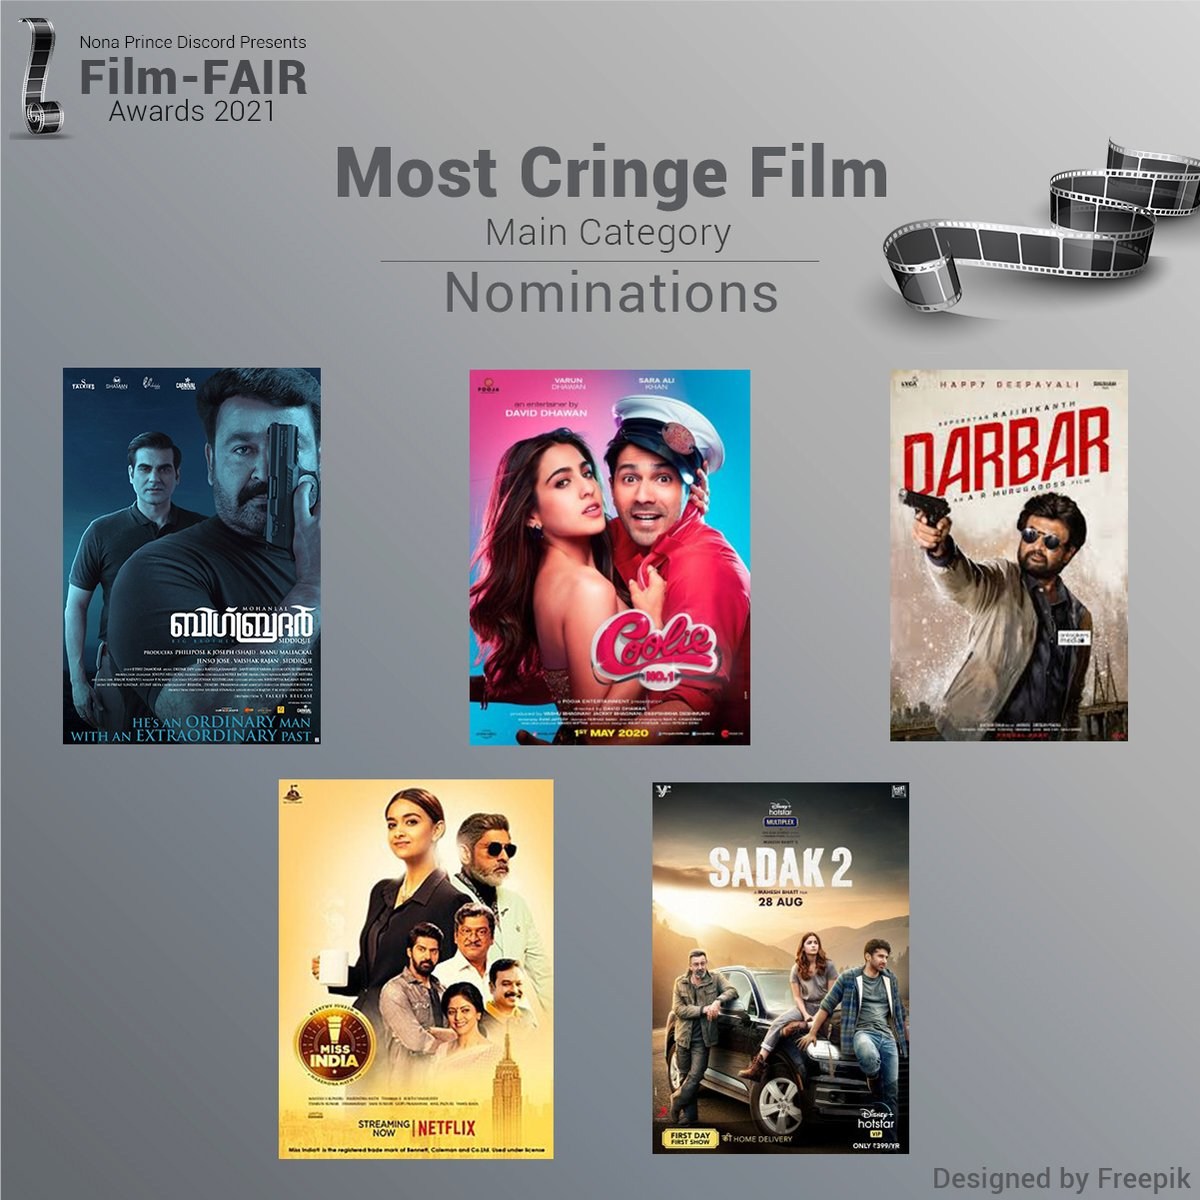 Nominations for the Most Cringe Film of 2020 Go Vote here -    #BigBrother #coolieno1 #Darbar #MissIndia #sadak2 #BoycottBollywood #Mohanlal #VarunDhawan #rajnikanth  #FilmFAIRAwards2021 #FilmFAIRNominations #Vote